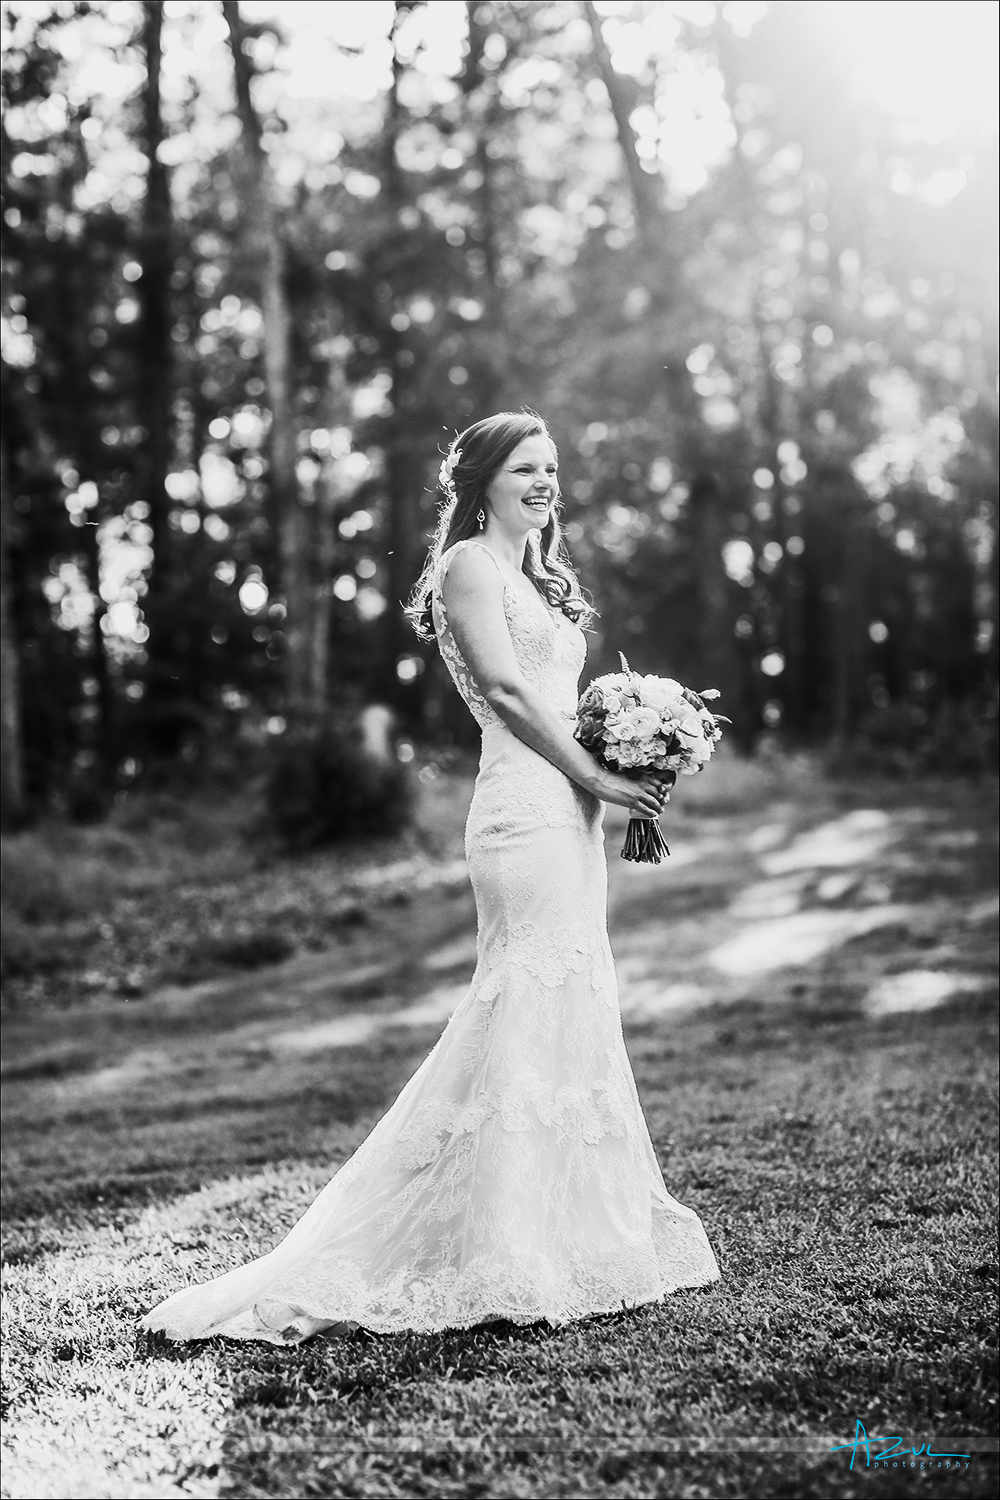 Wedding day bridal portrait photography of the bride on her big day in Chapel Hill North Carolina